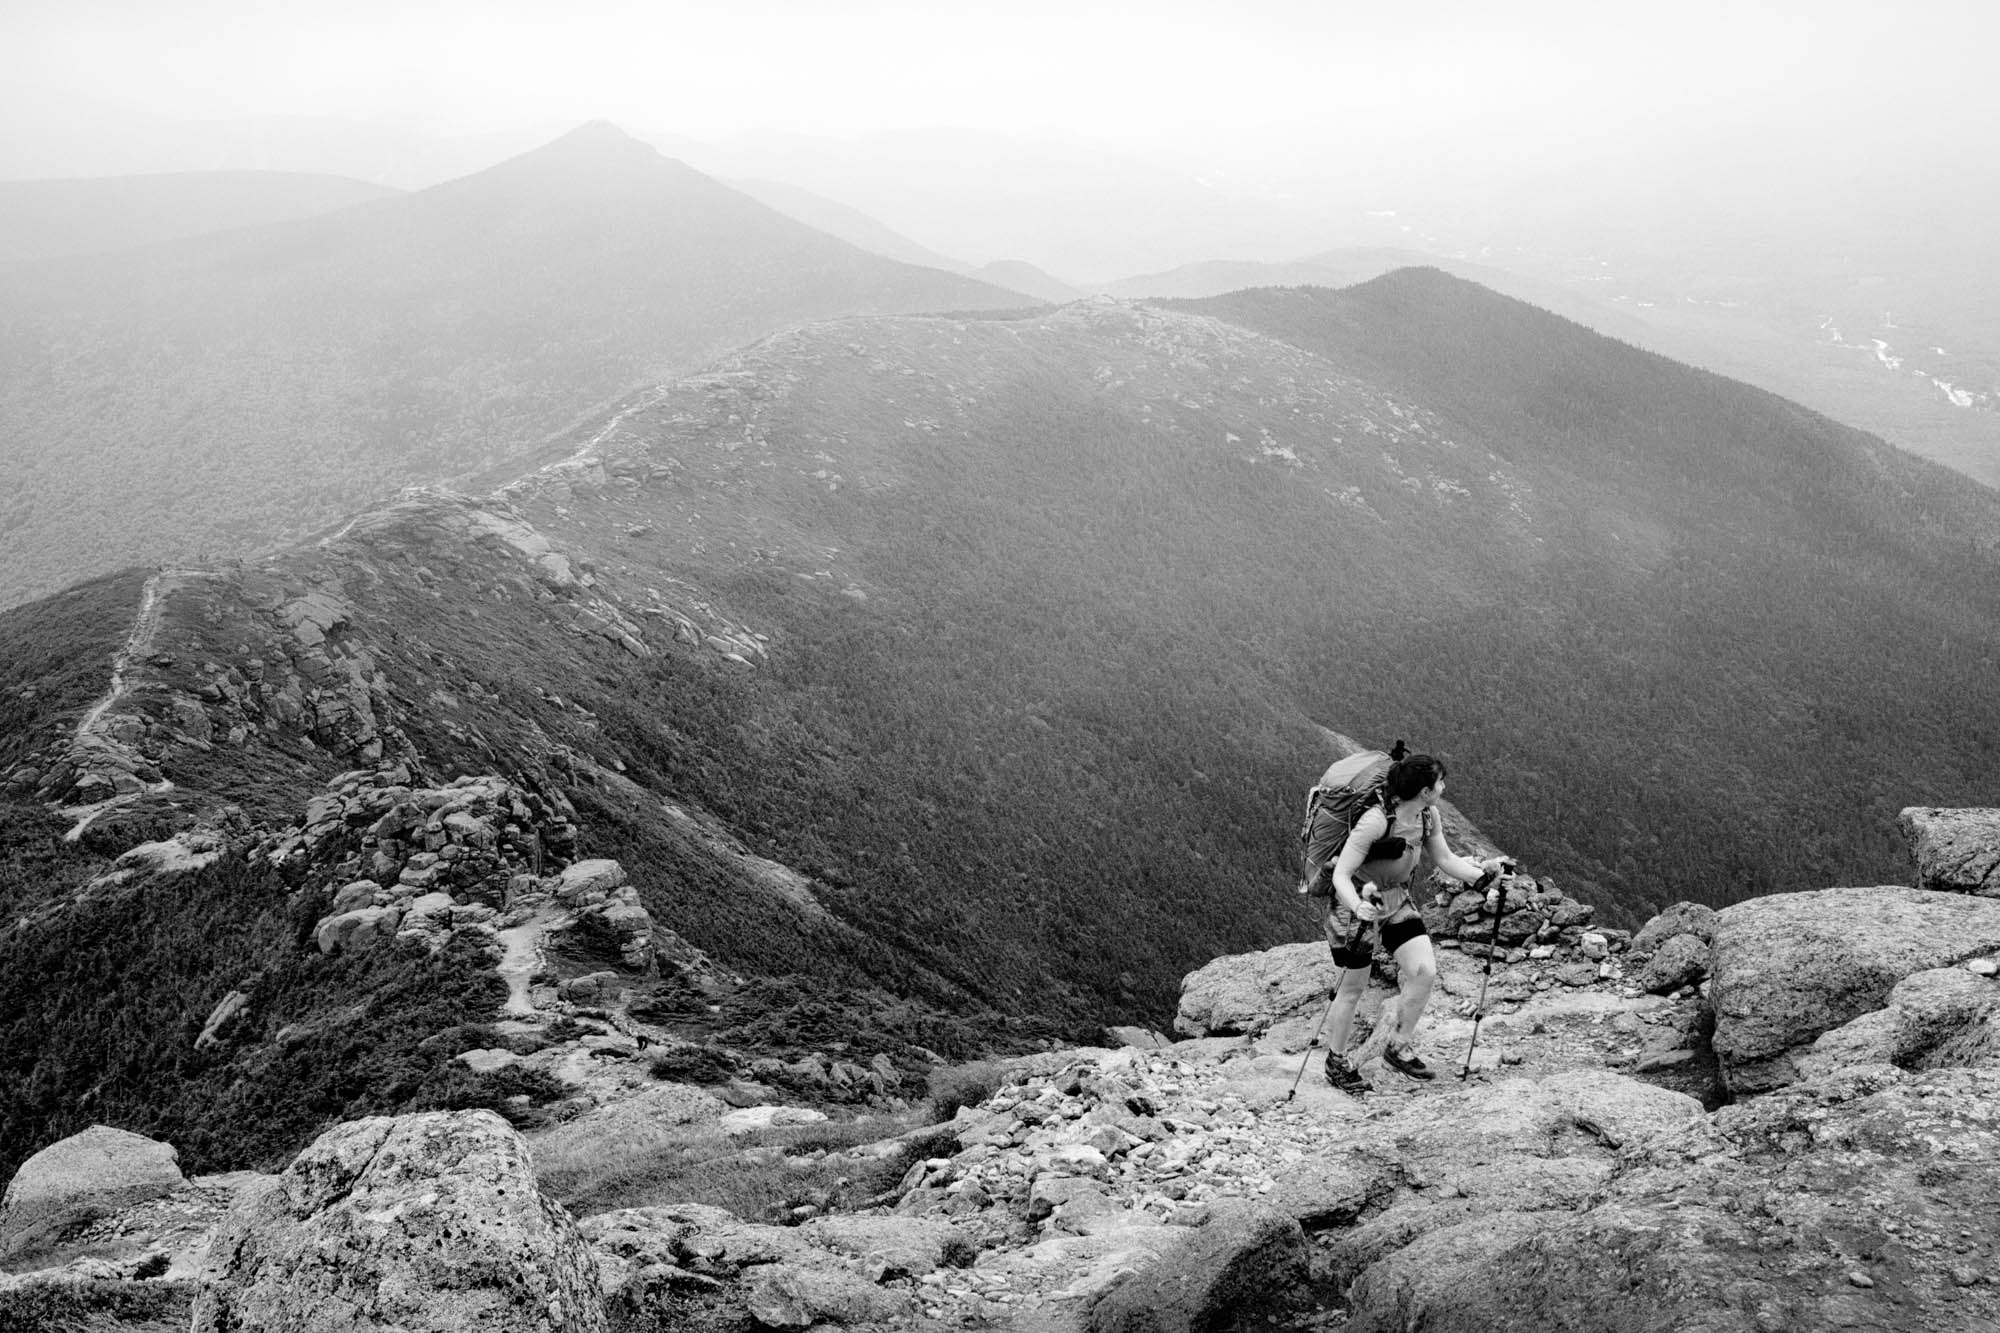 A hiker on Franconia Ridge Trail, White Mountains